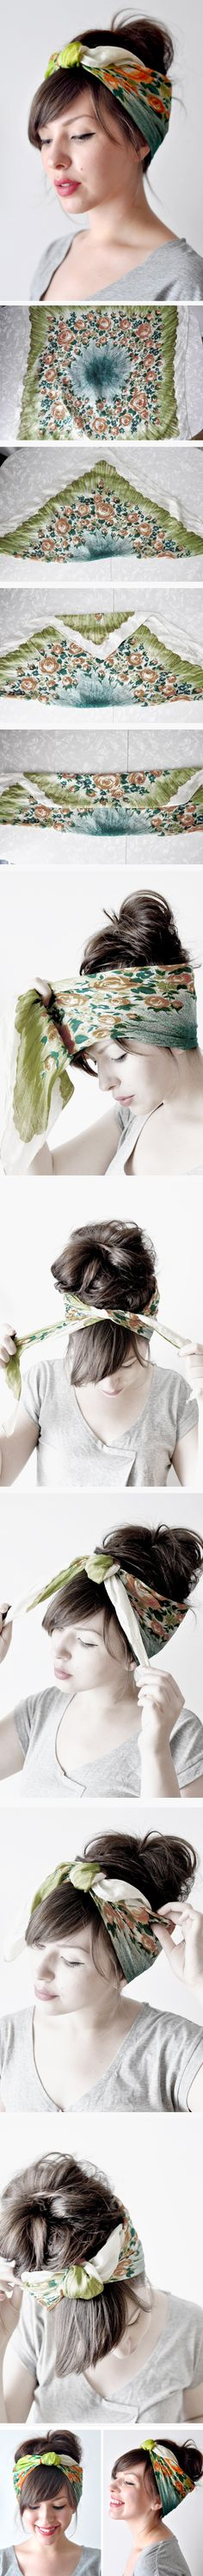 Head scarf... I think that this would work with any length hair. Gonna try it and mine is short. Poof or a spike and instant cute!  ******RYE IM PINNING THIS FOR YOU**** mostly ;-)